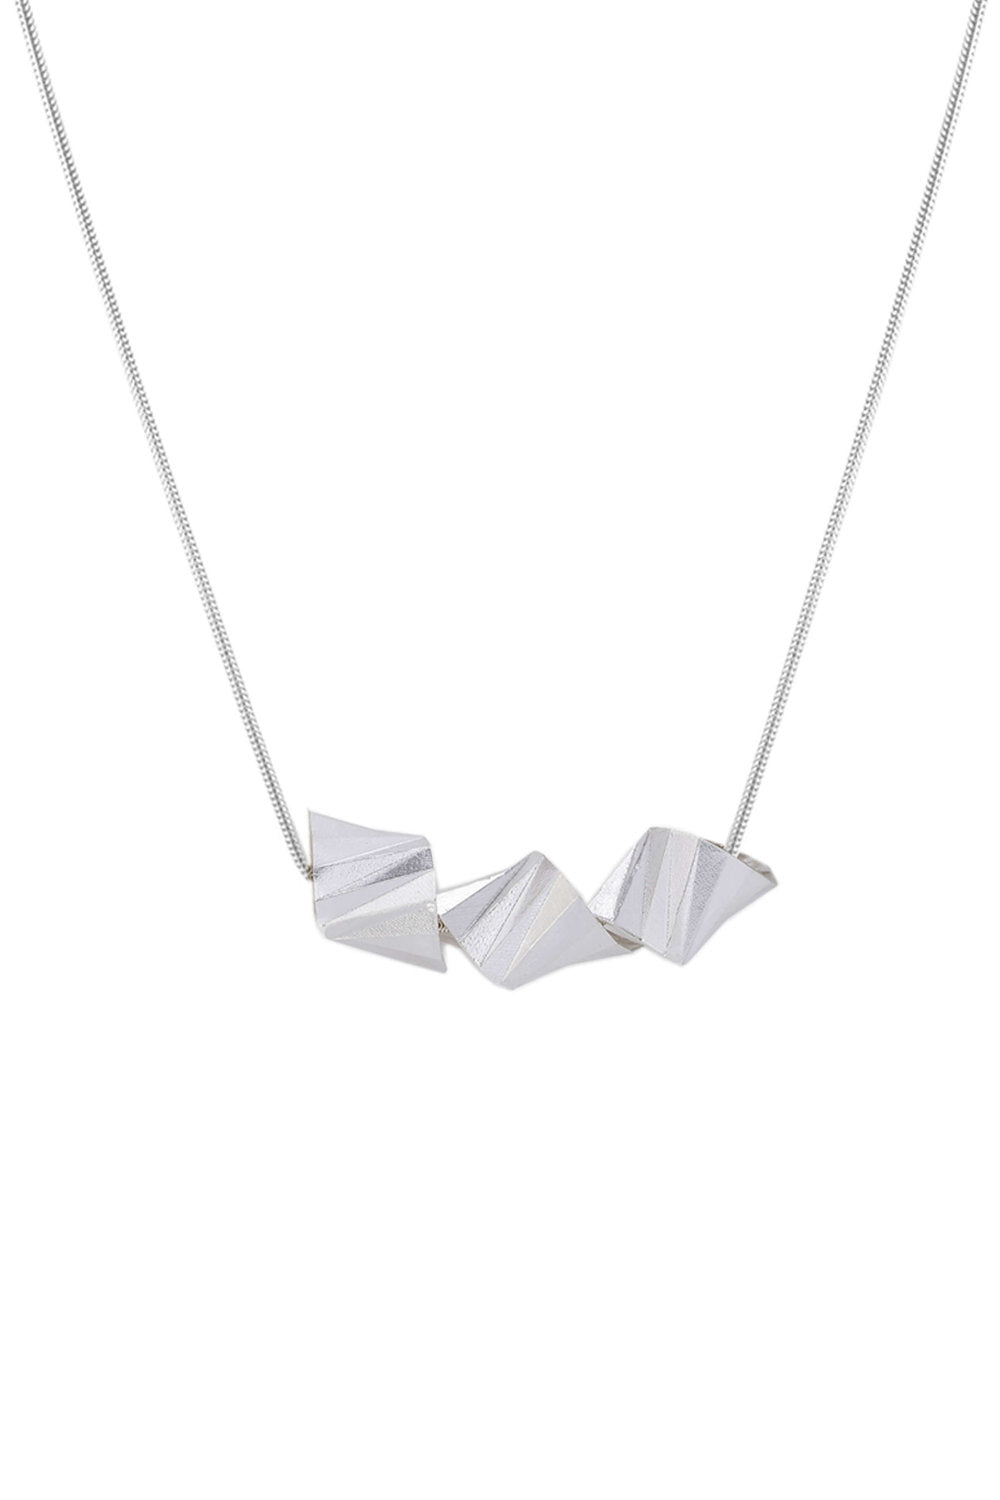 shkoh_silver_jewelry_ondine_grand_necklace_01.jpg